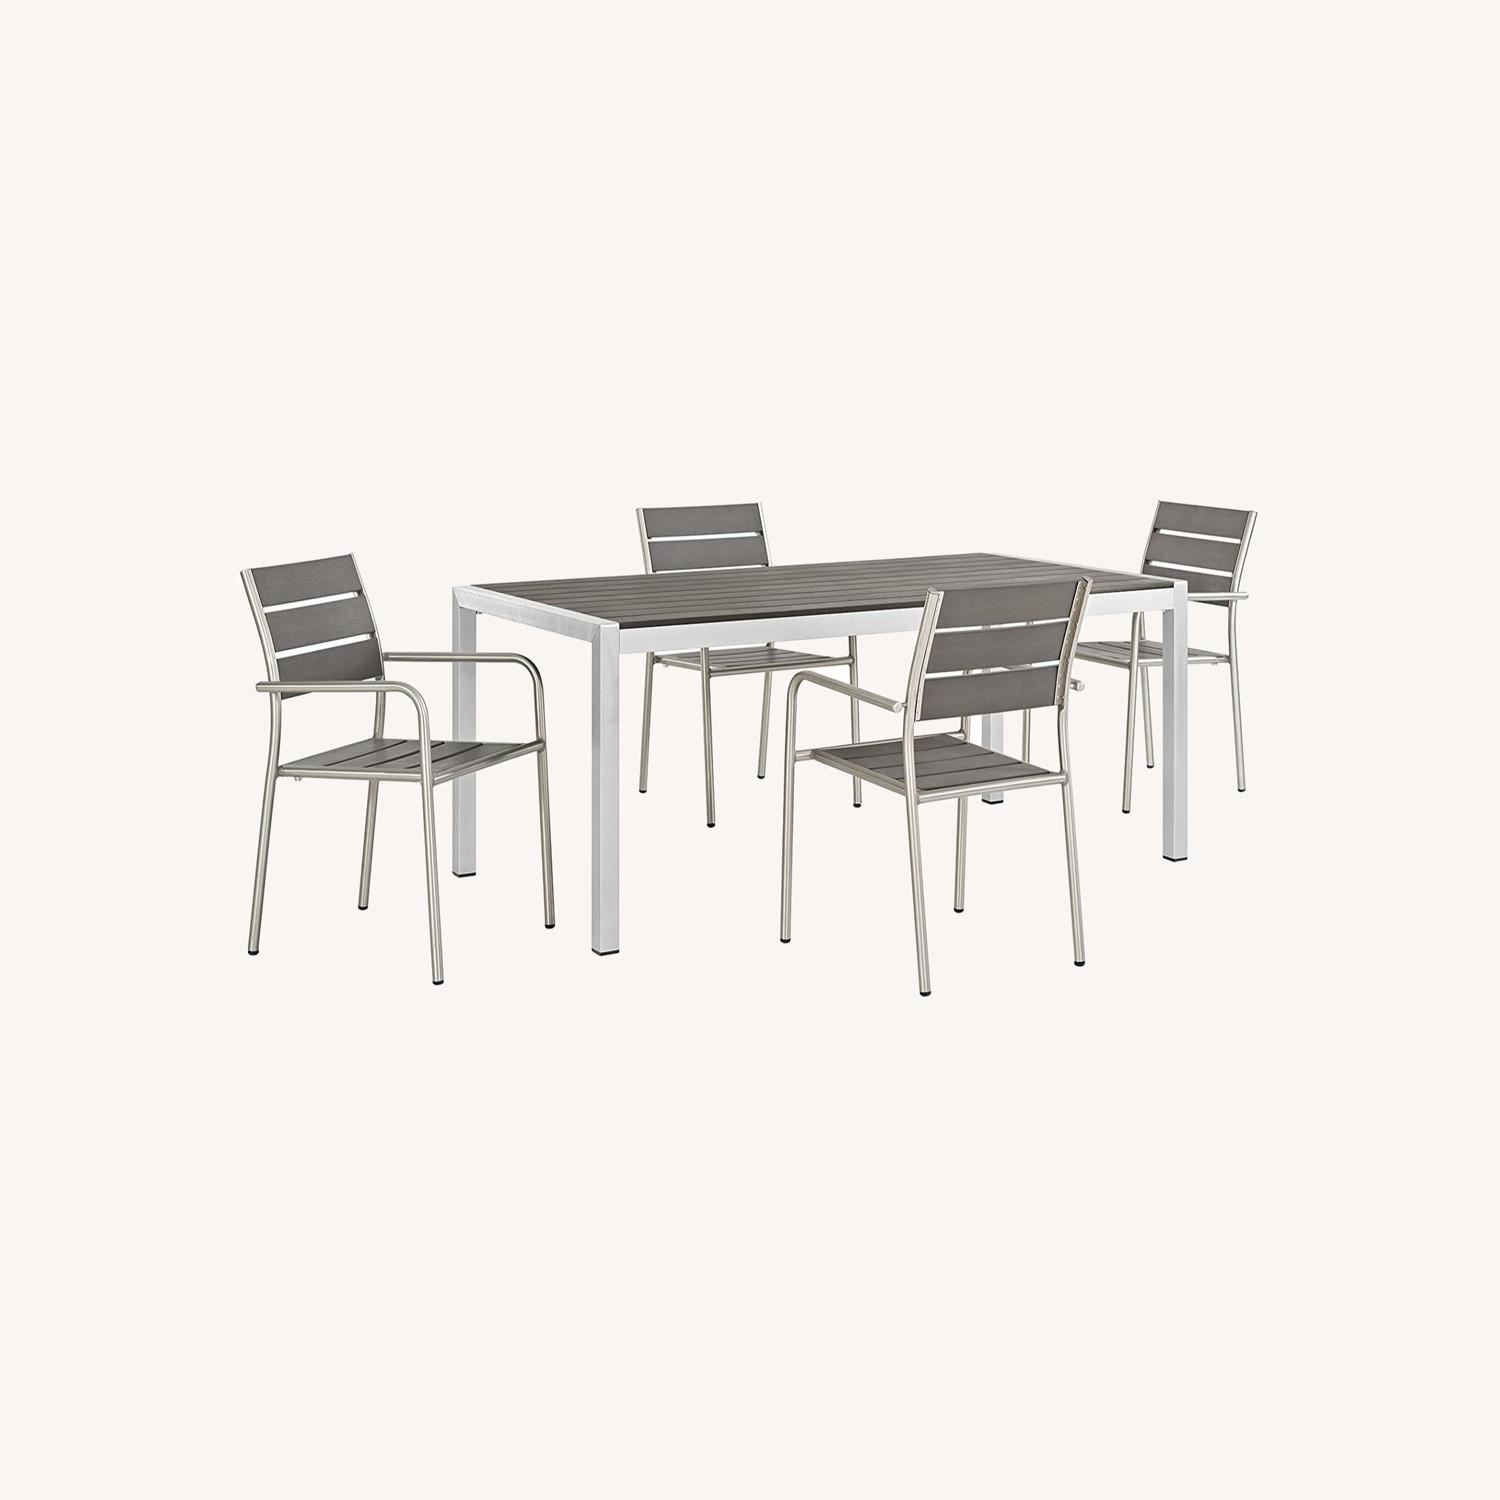 Modern 5-Piece Dining Set In Silver Gray Finish - image-7